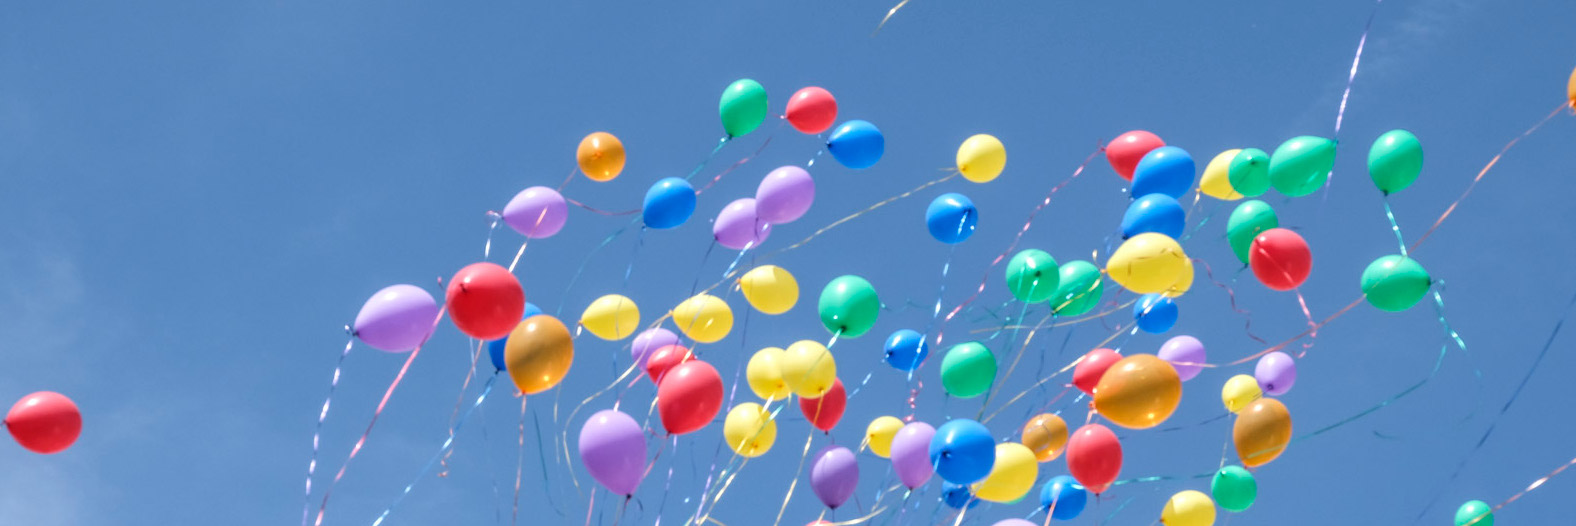 Diversity -  Colourful balloons in the air